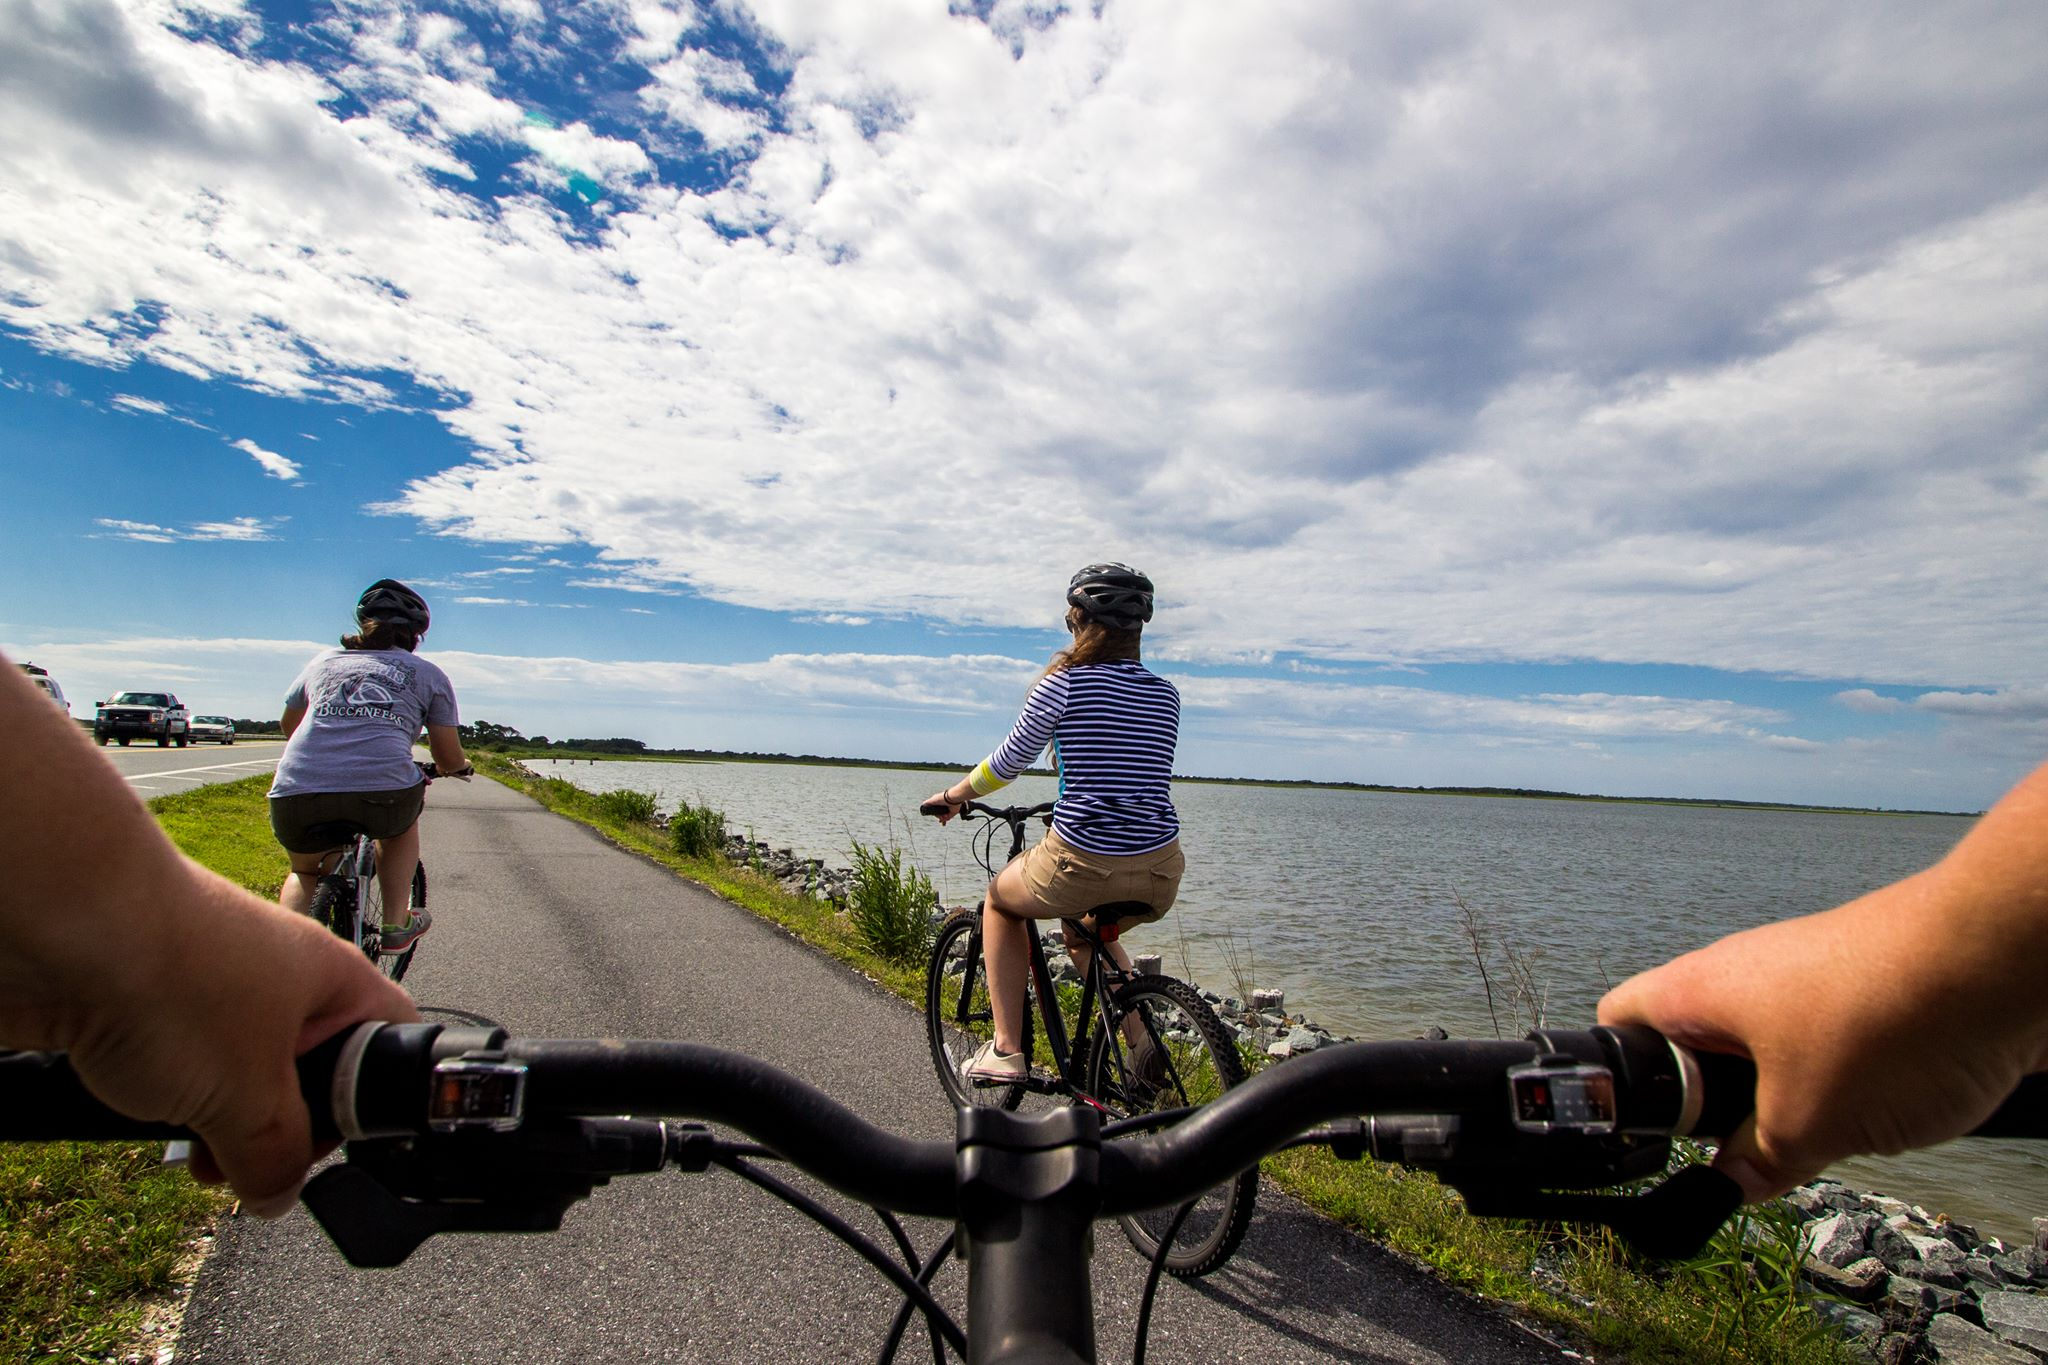 Explore the changing landscape of the islands on foot or by renting a bike. The Bayberry drive on Assateague is a four-mile scenic route with fantastic views of the island, and a chance to spot many species of birds.{ } (Image: Courtesy National Park Service)